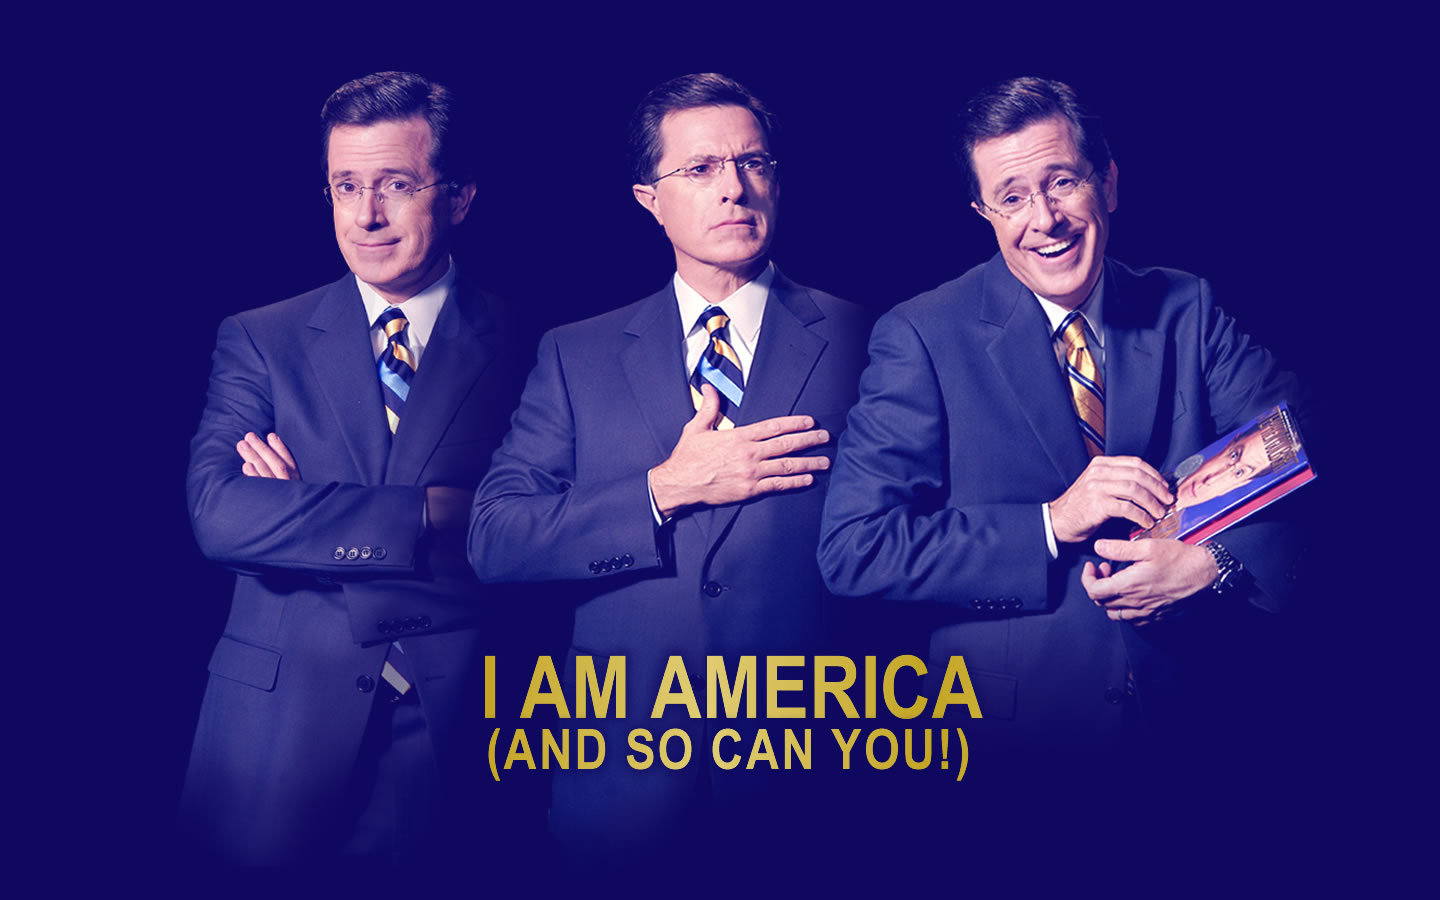 Stephen   Stephen Colbert Wallpaper 1010042 1440x900